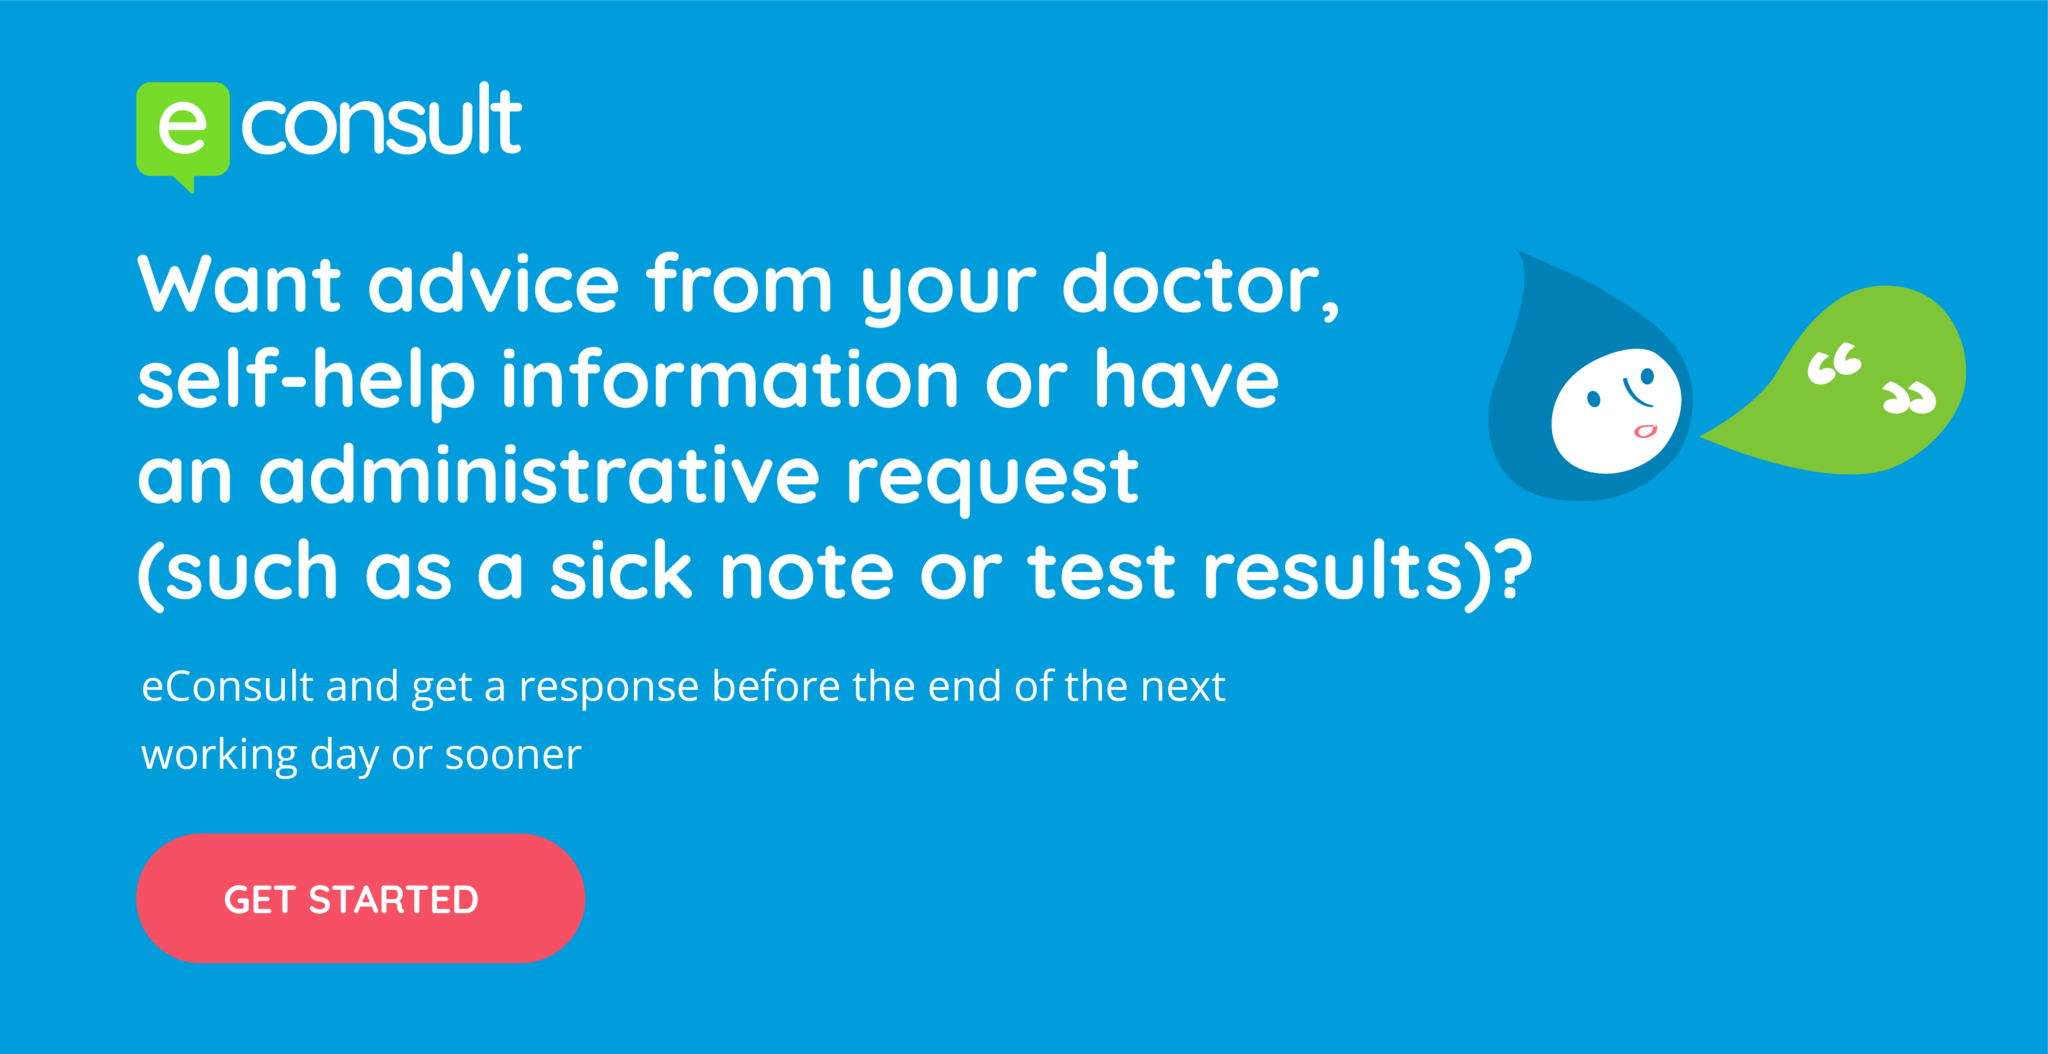 Want advice from your doctor, self-help information or have and administrative request? Get started with eConsult